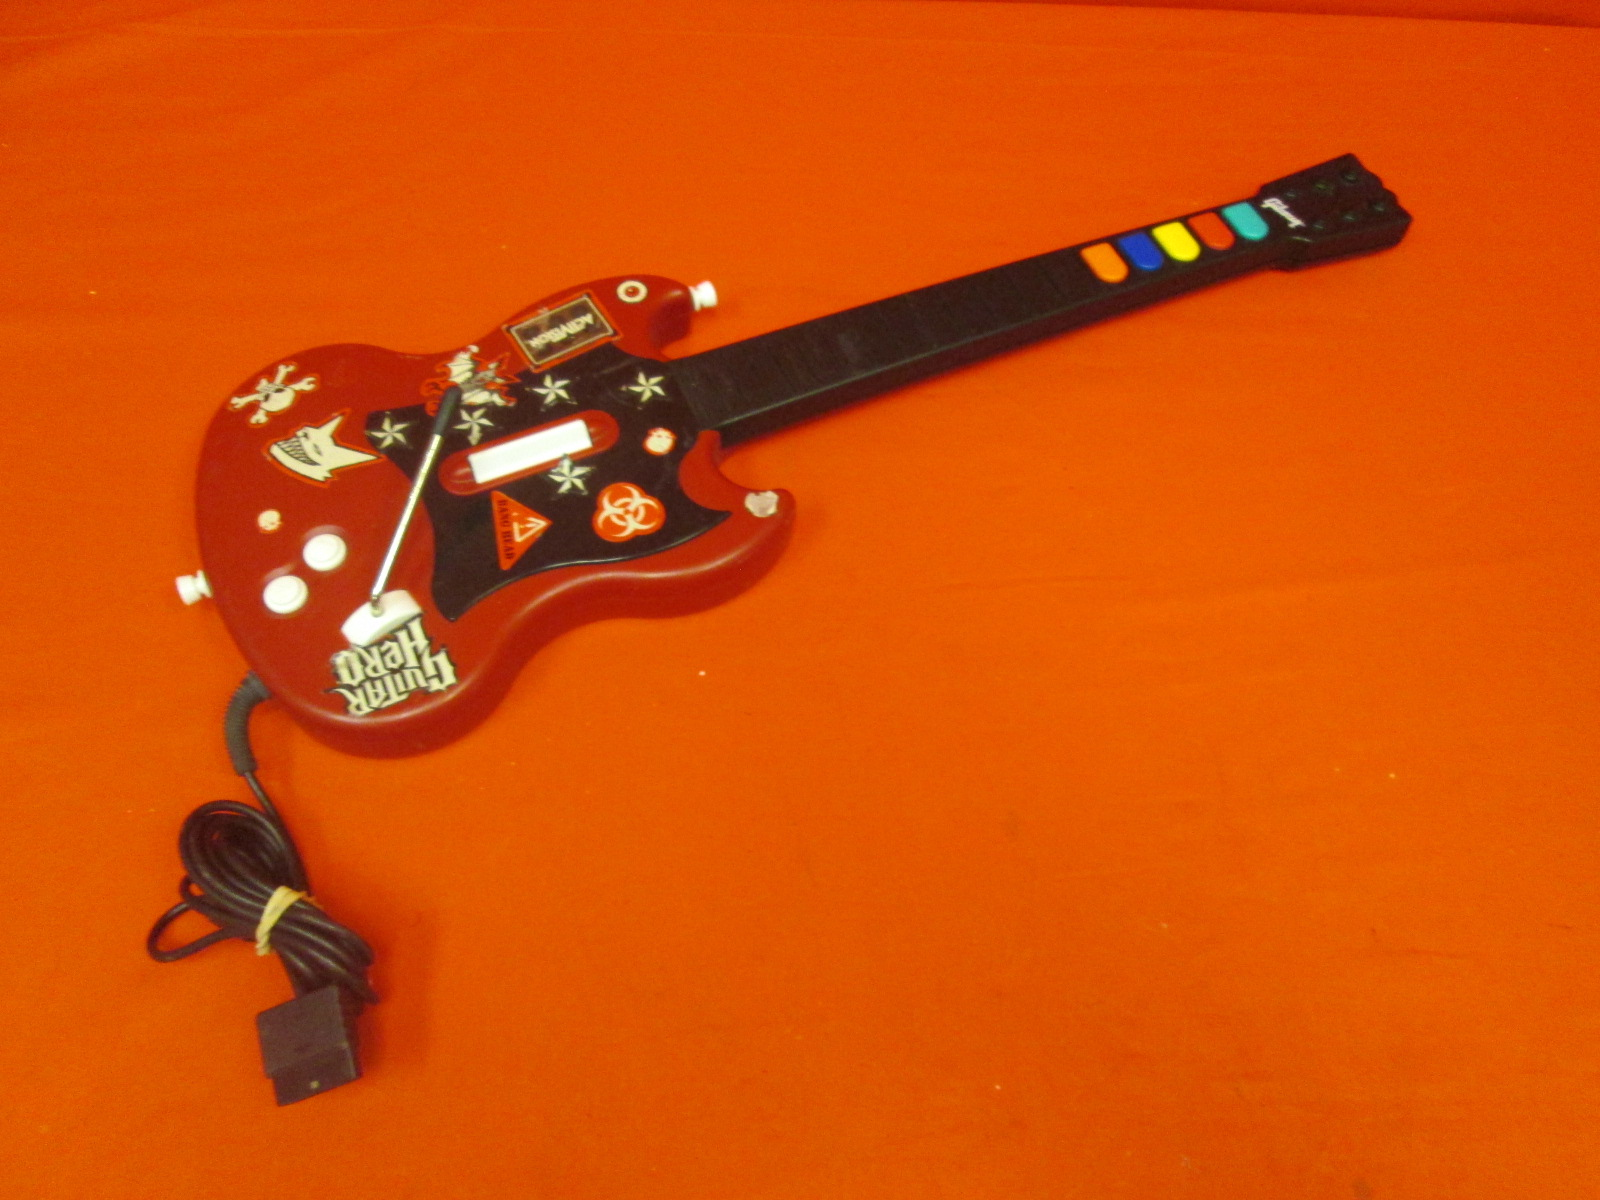 Cherry Guitar Hero Sg Controller For PS2